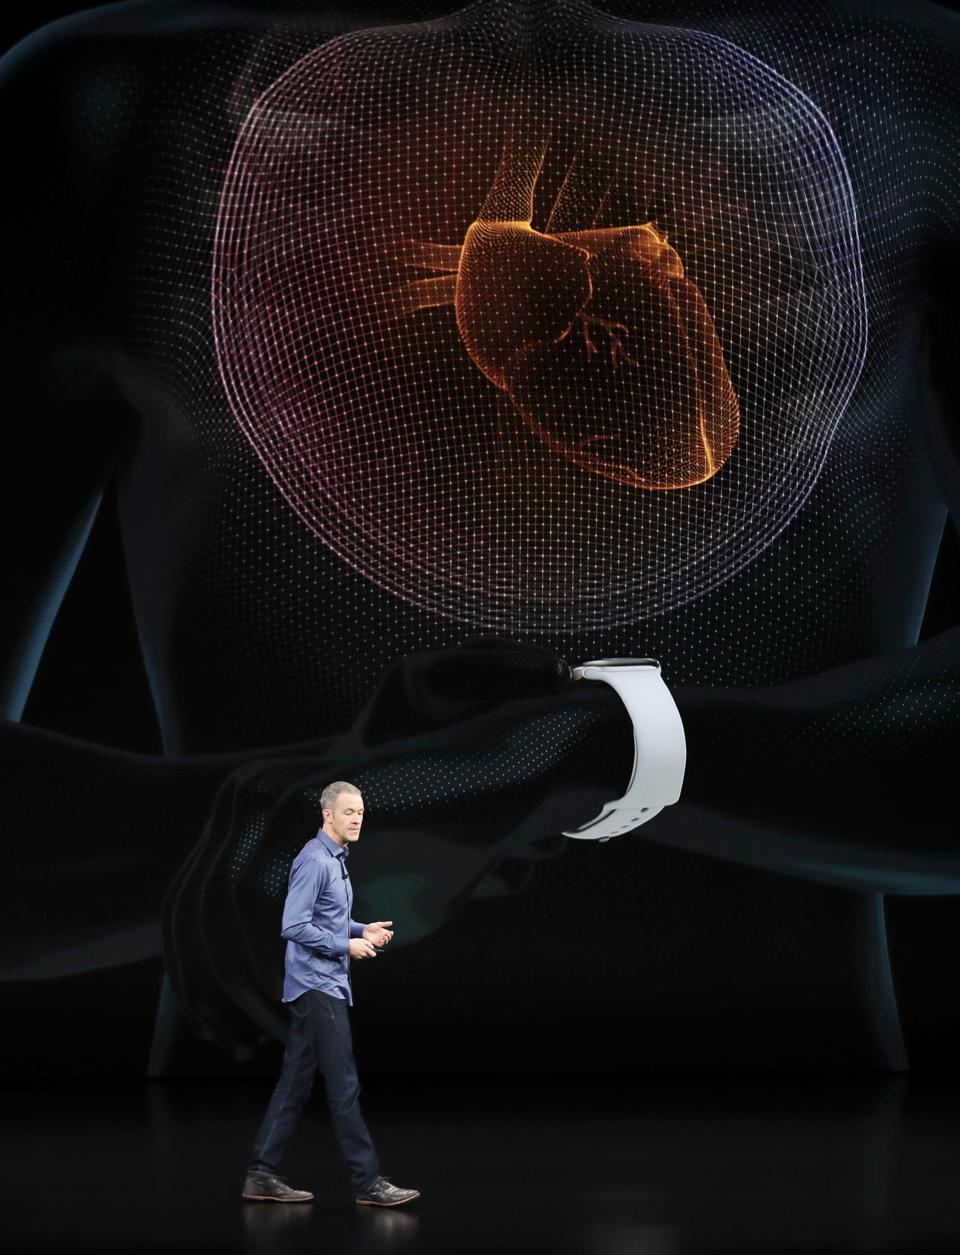 5 Reasons Why You Should Be Excited About Apple Watch 4's ECG Sensor